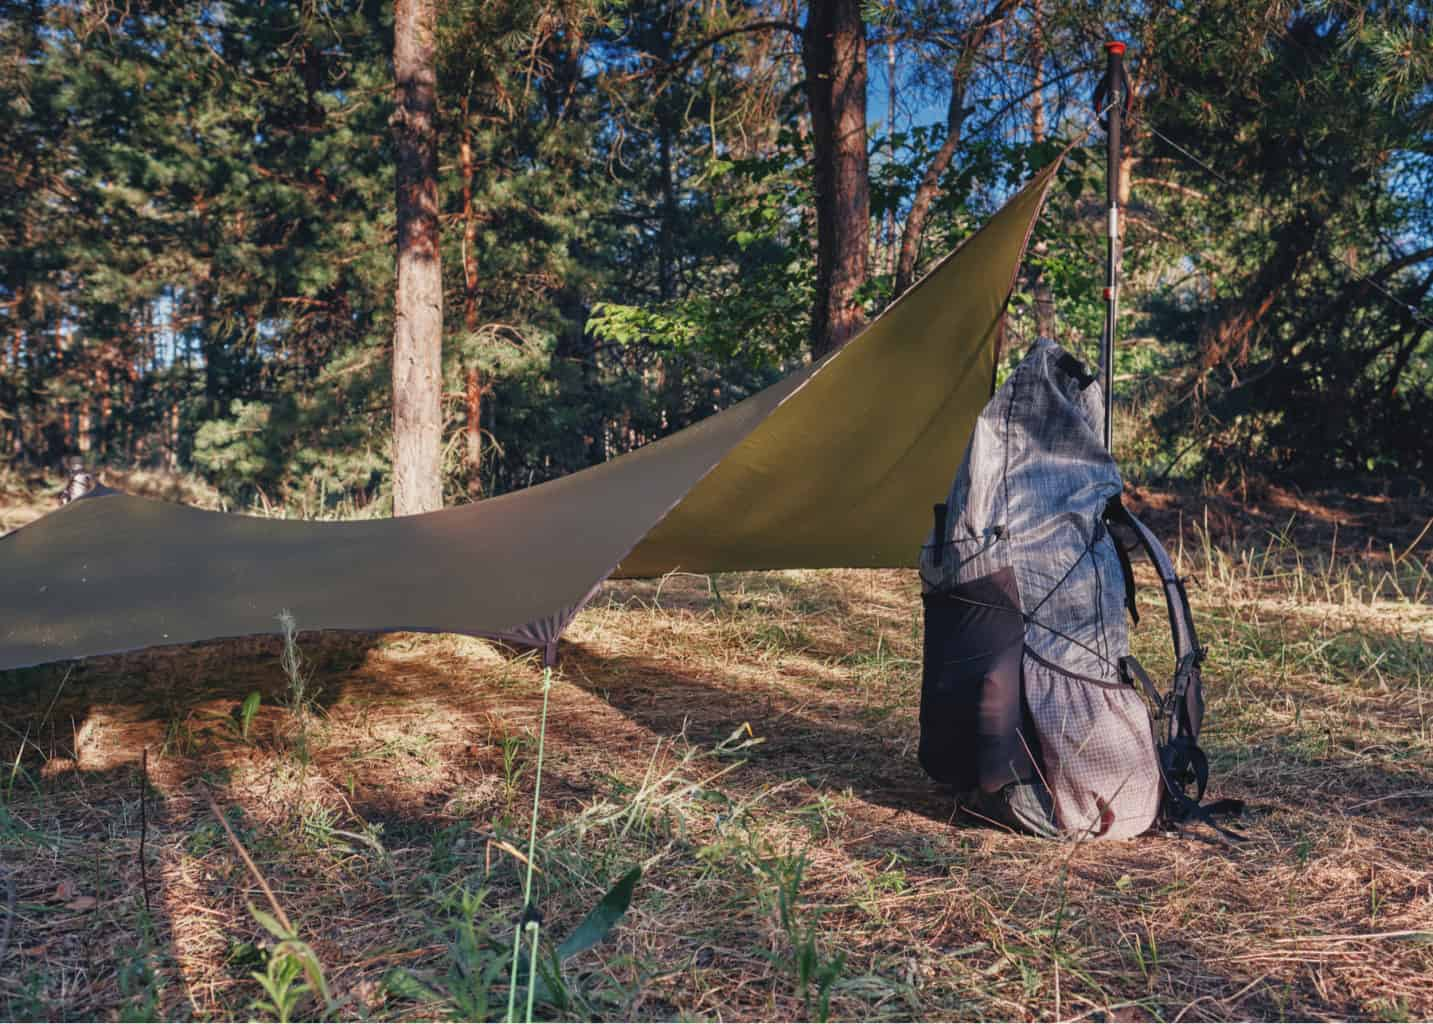 backpack next to tarp tent